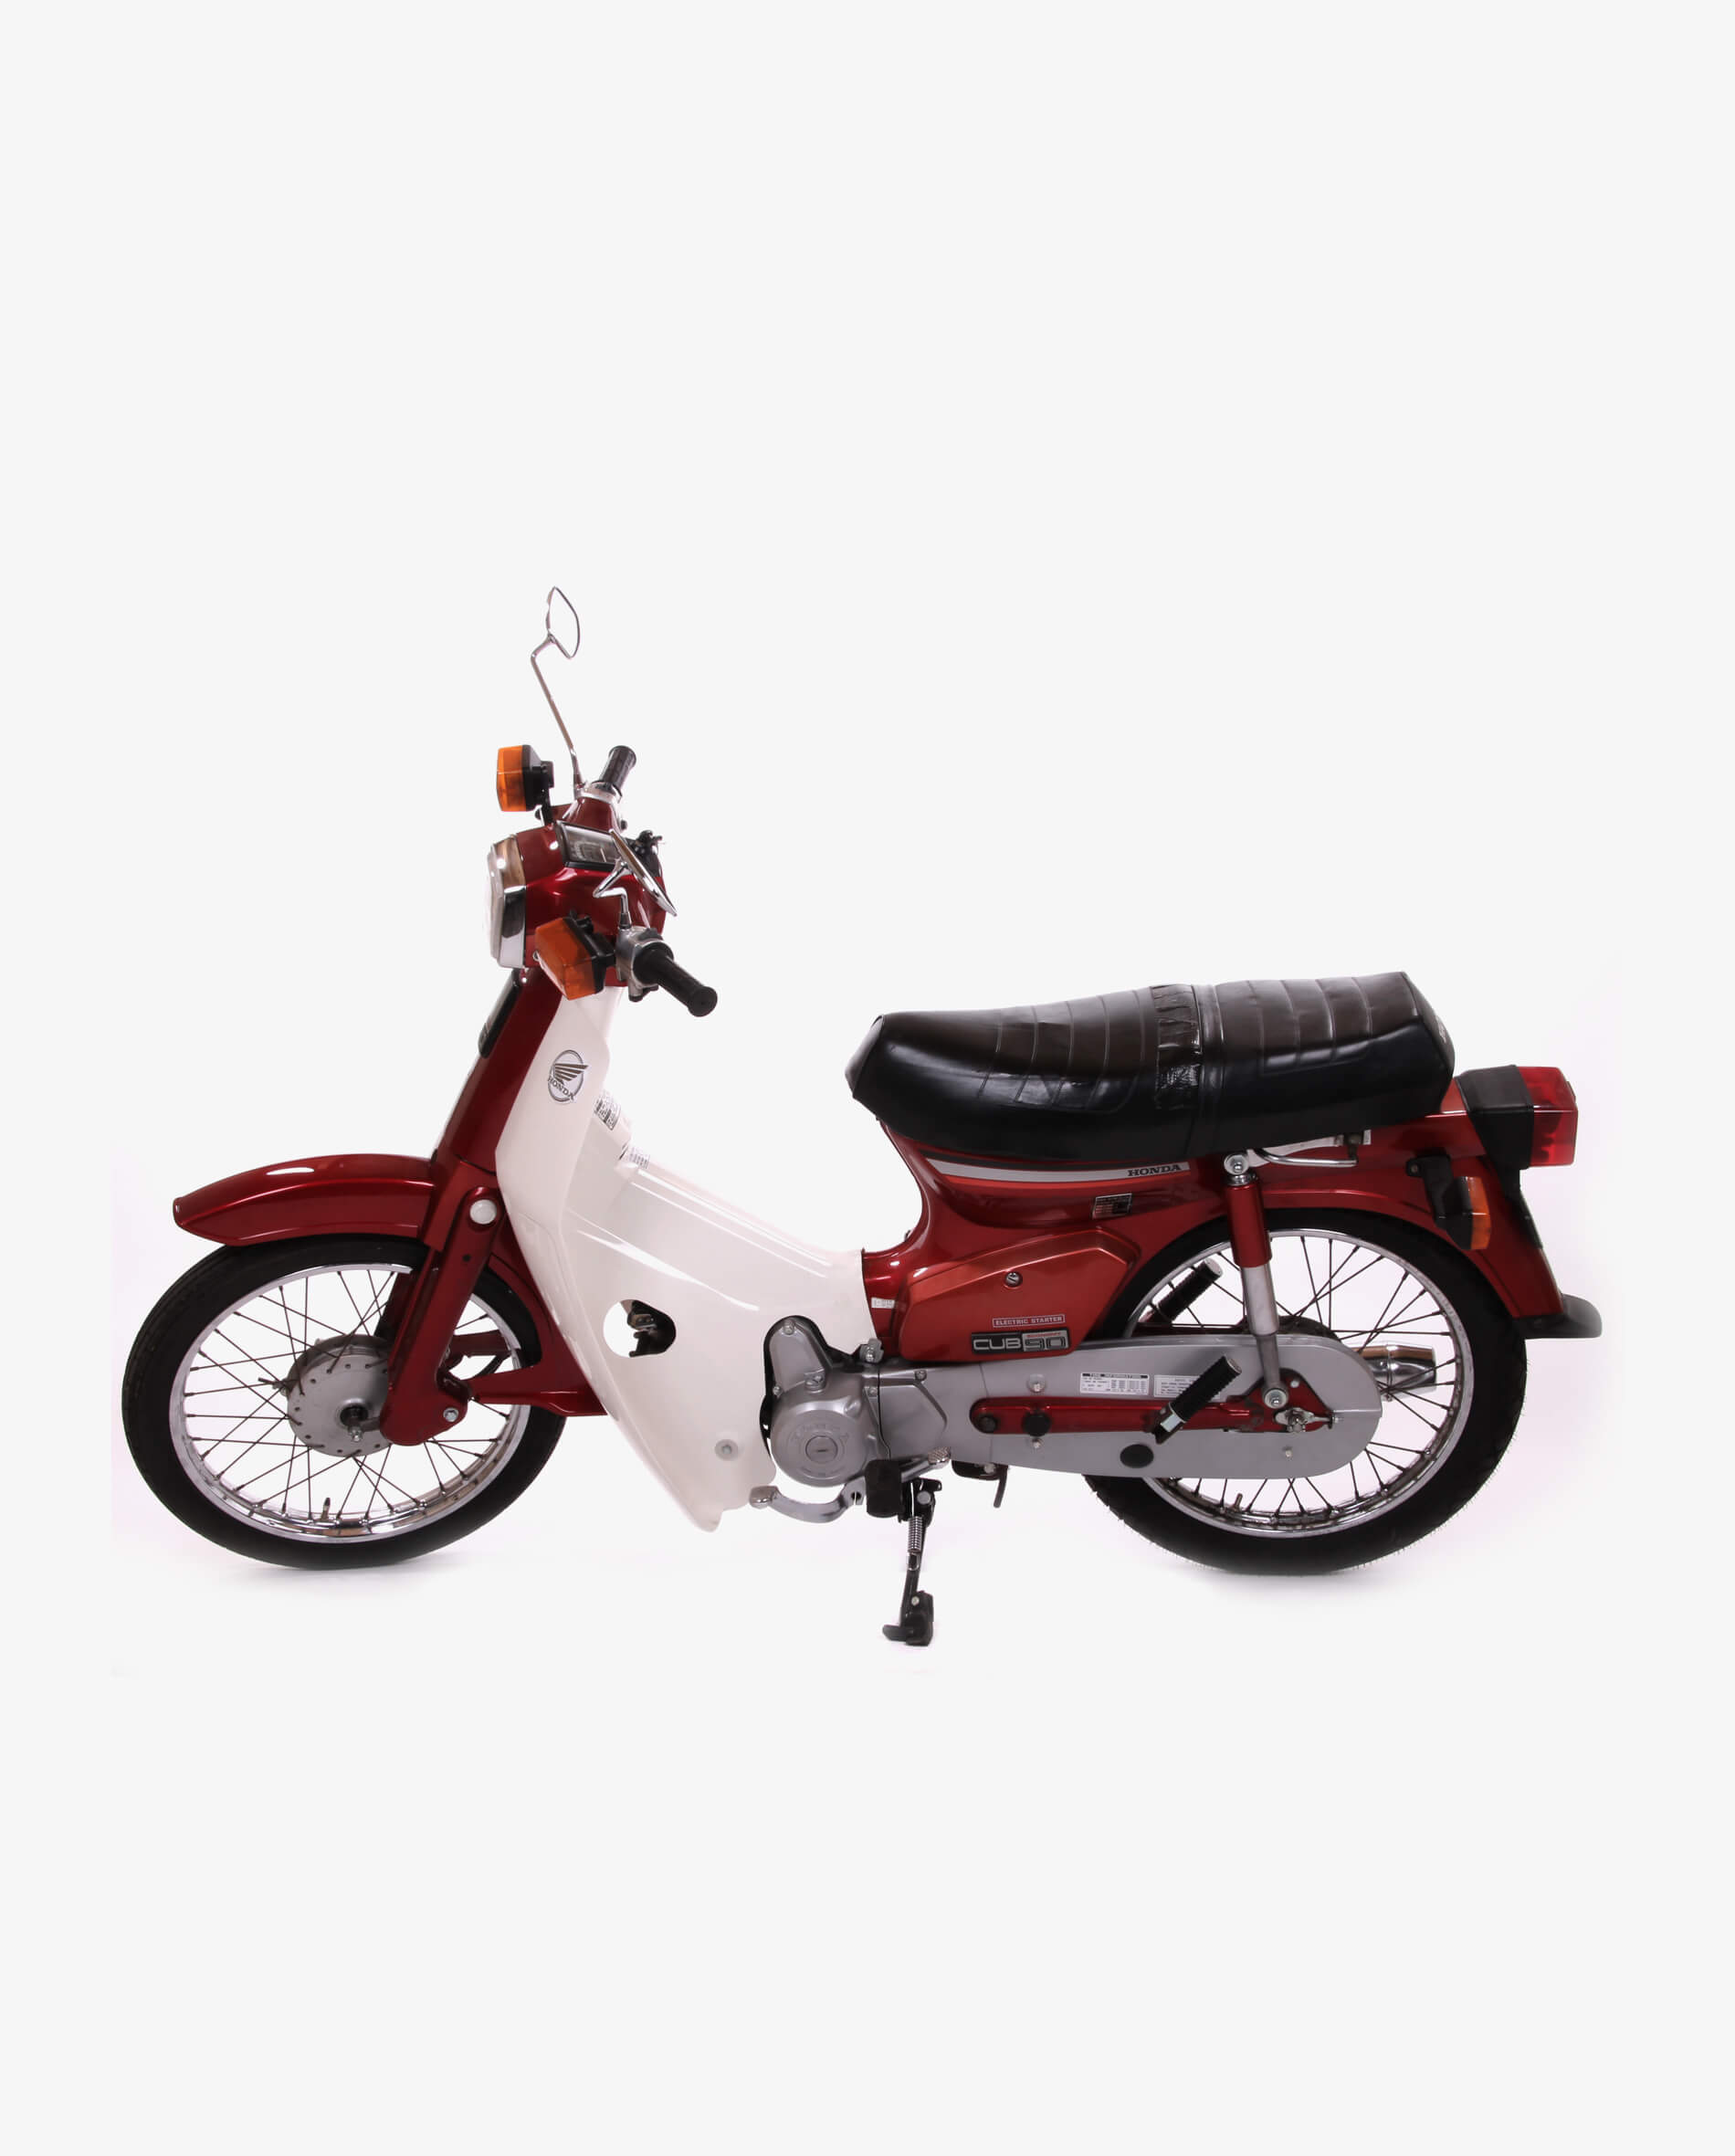 documentation honda shop manual honda c70 free download rh fourstrokebarn com Used Honda Super Cub honda cub 90 workshop manual